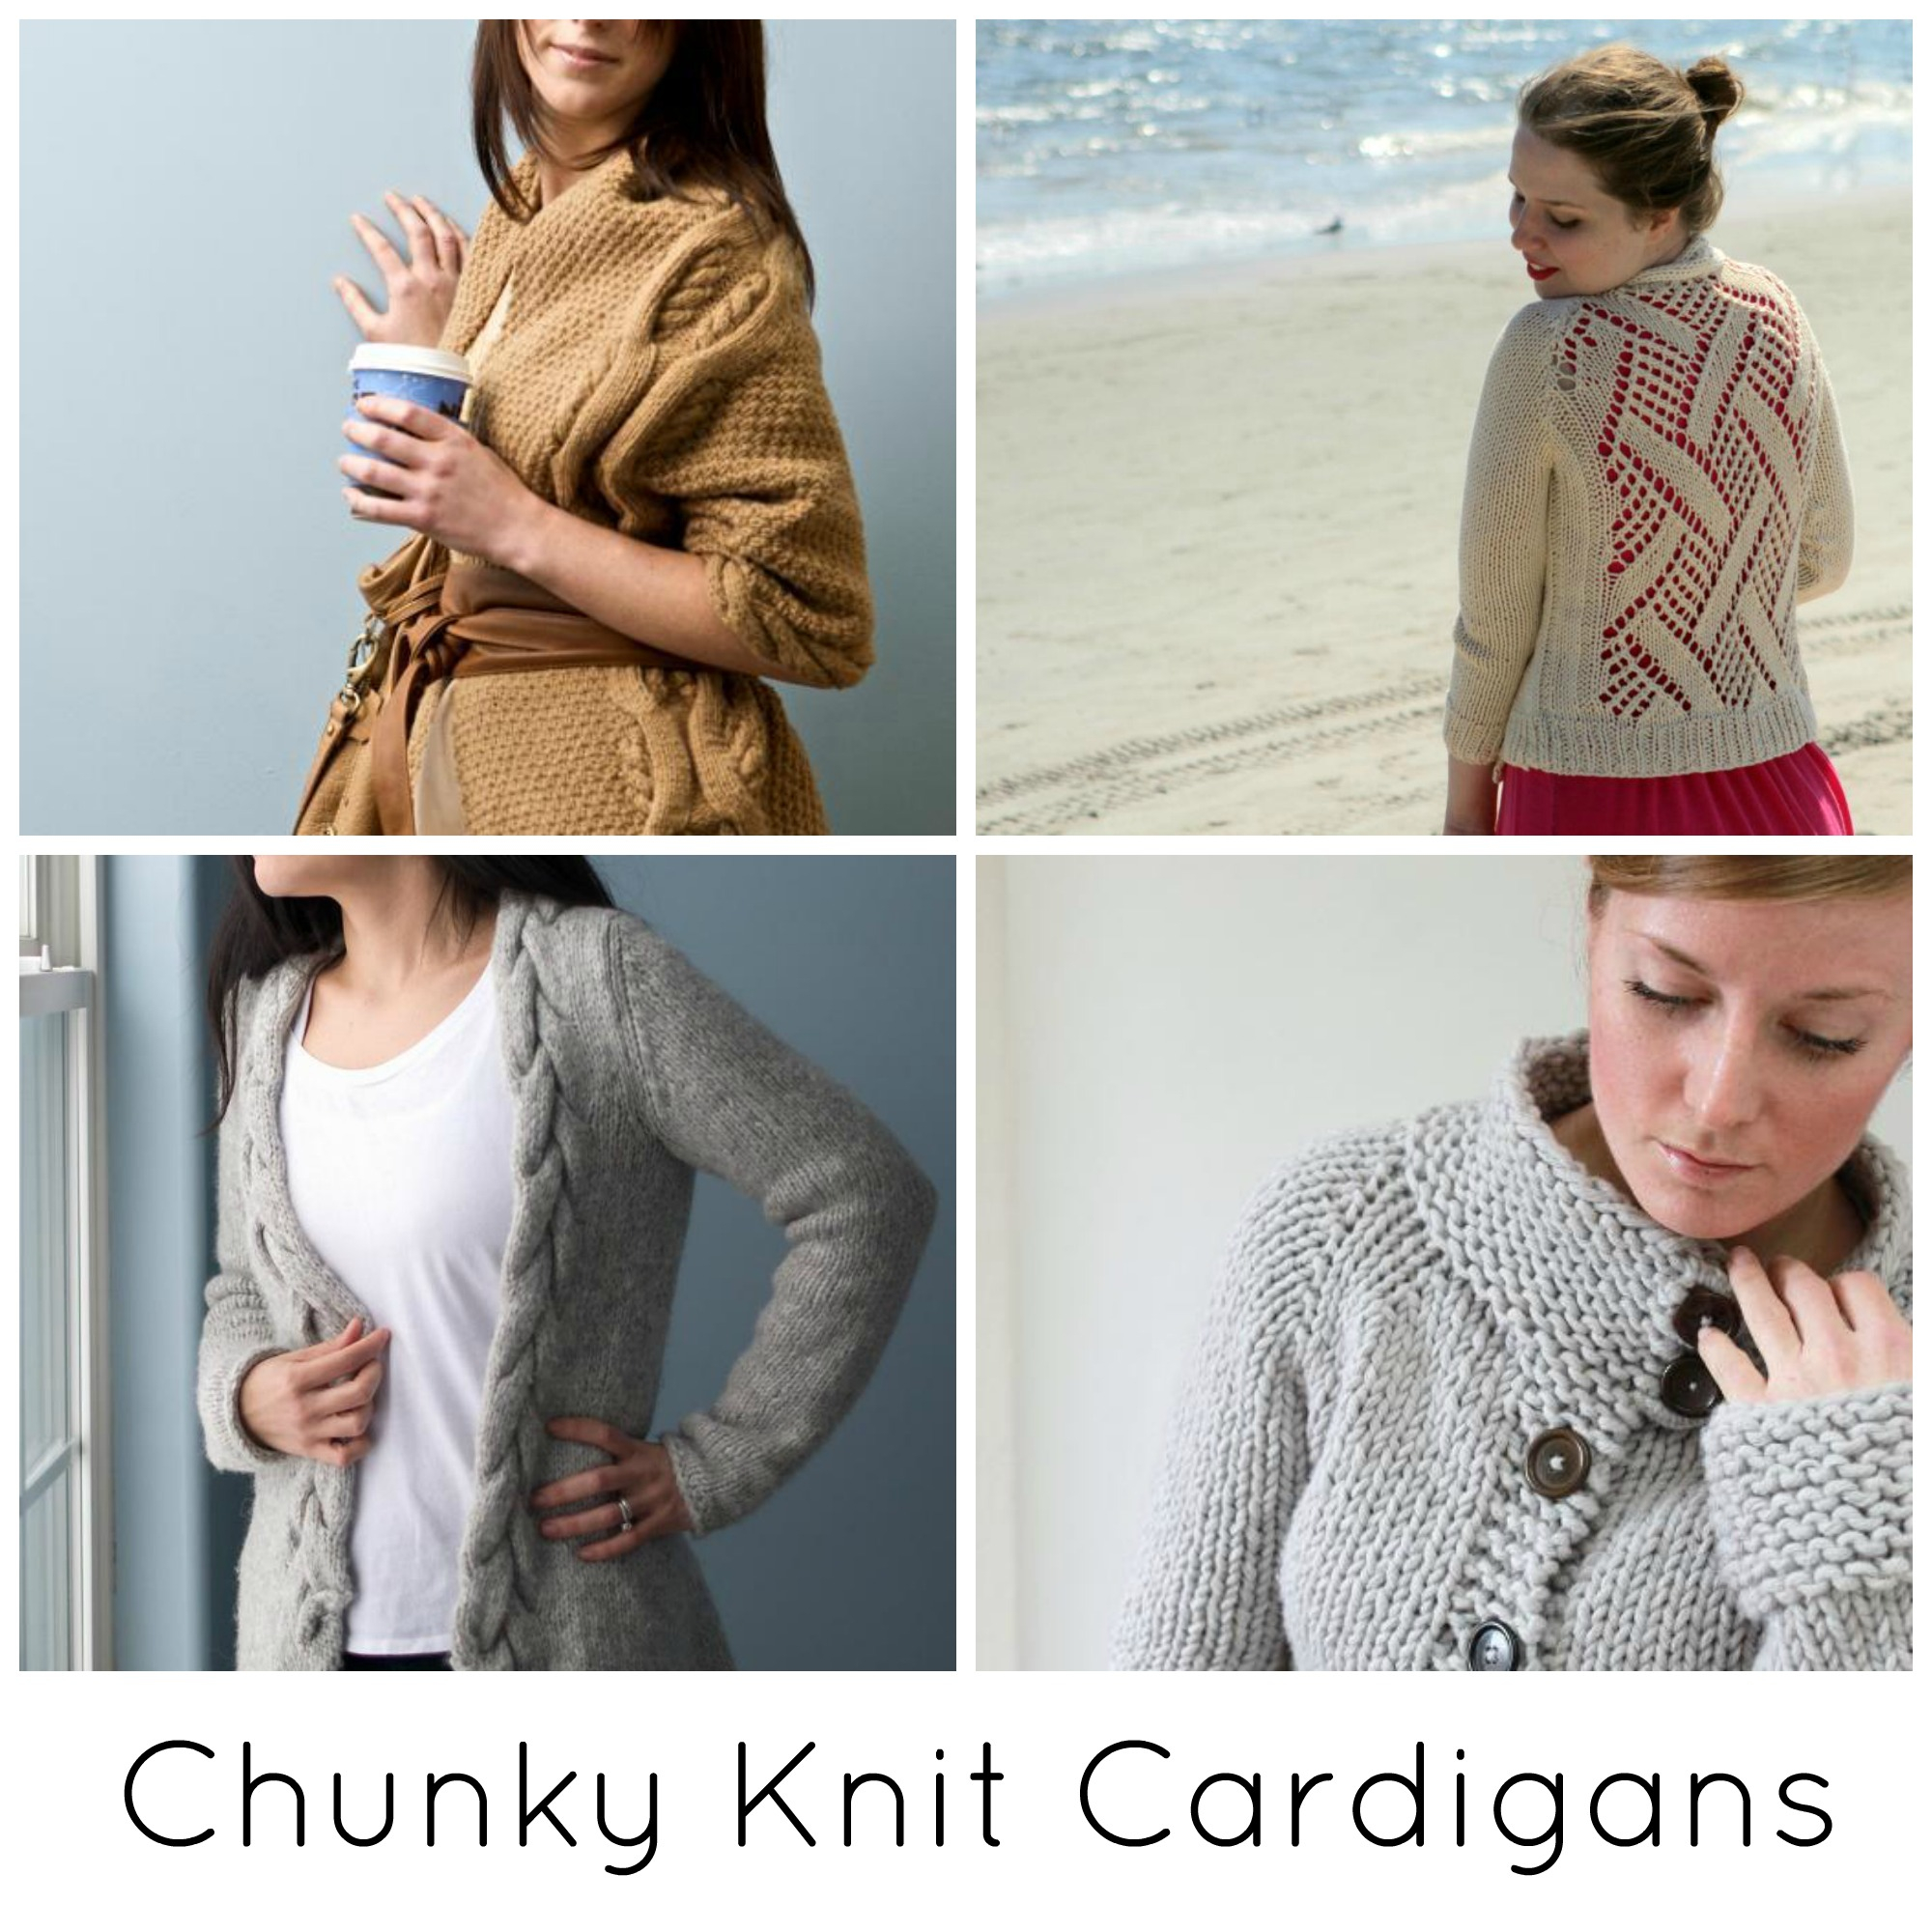 Free Sweater Patterns To Knit The Coziest Chunky Knit Cardigan Patterns Ever